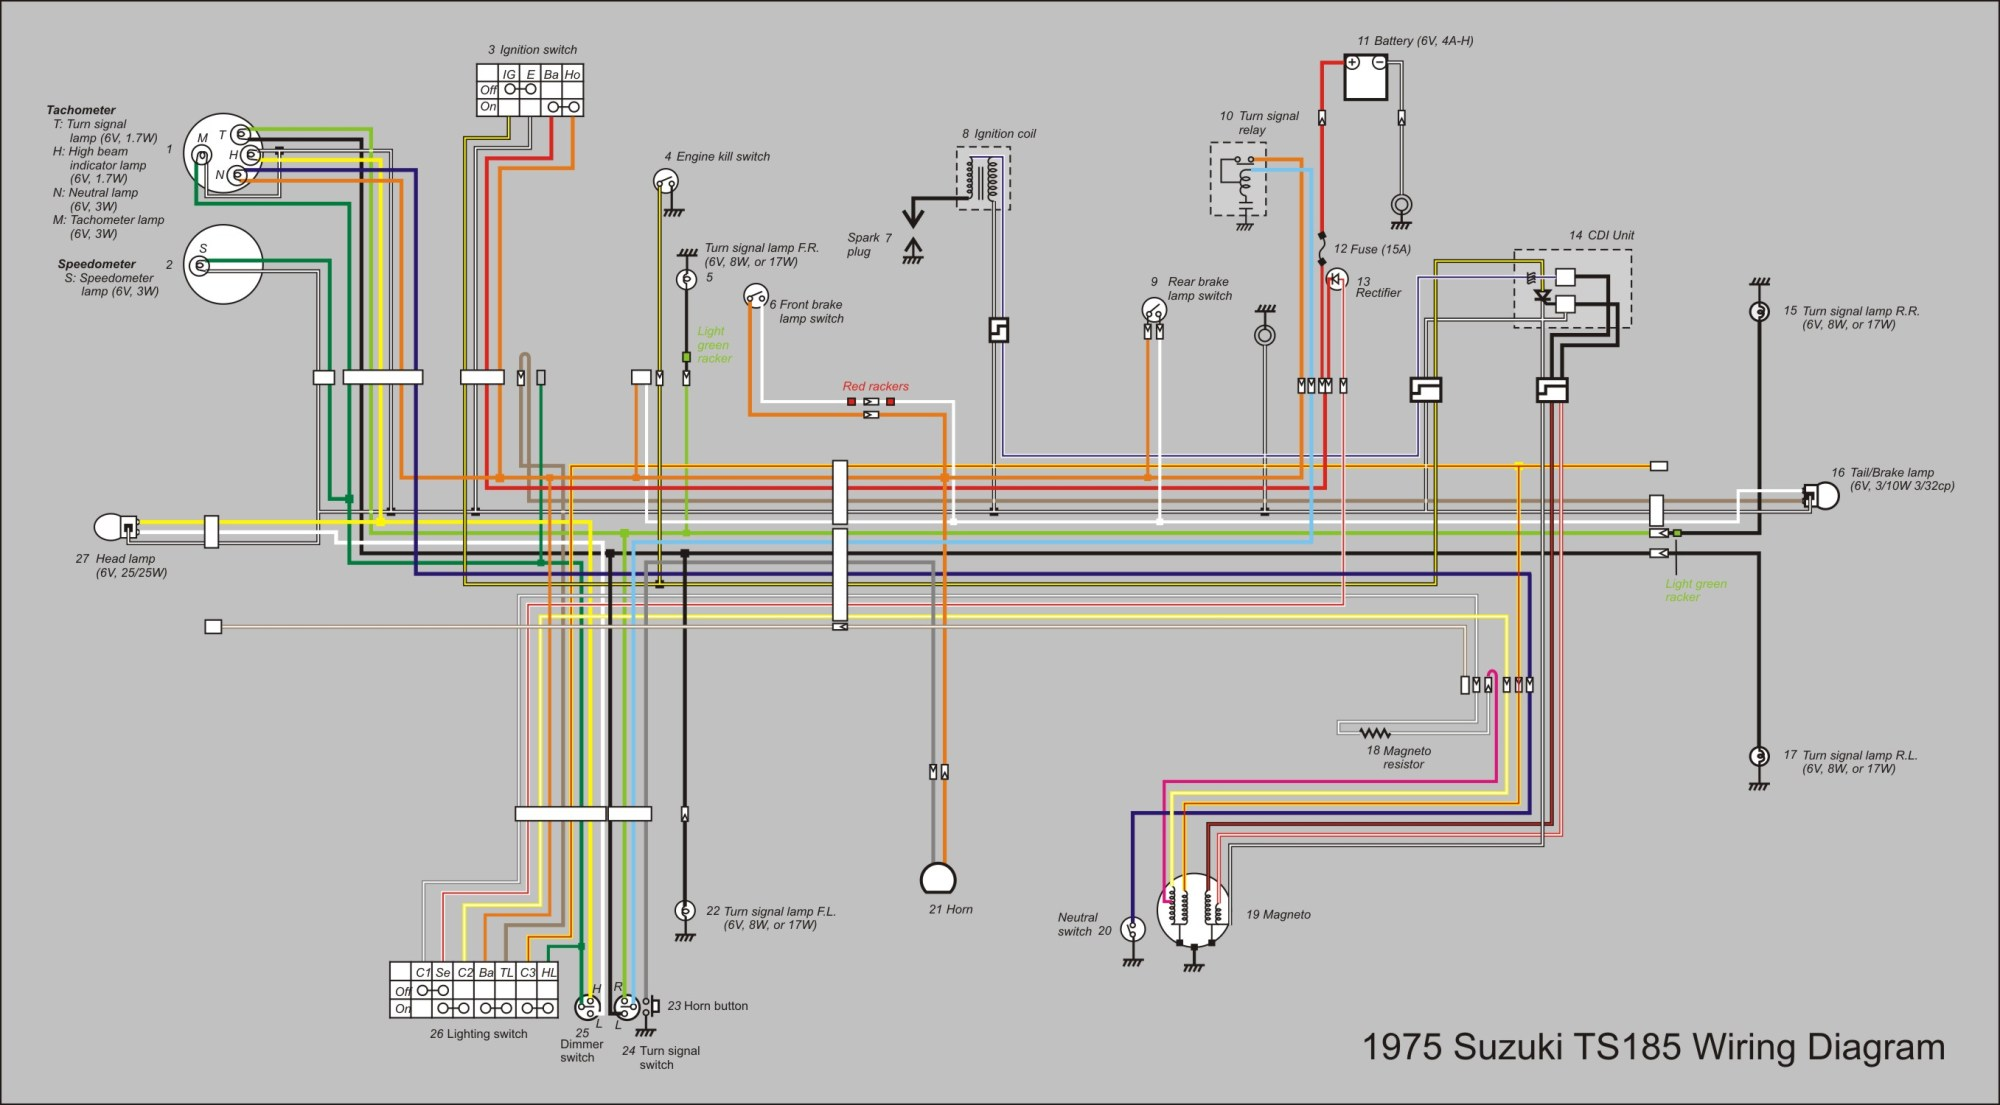 hight resolution of suzuki ts185 wiring diagram detailed schematics diagram rh antonartgallery com